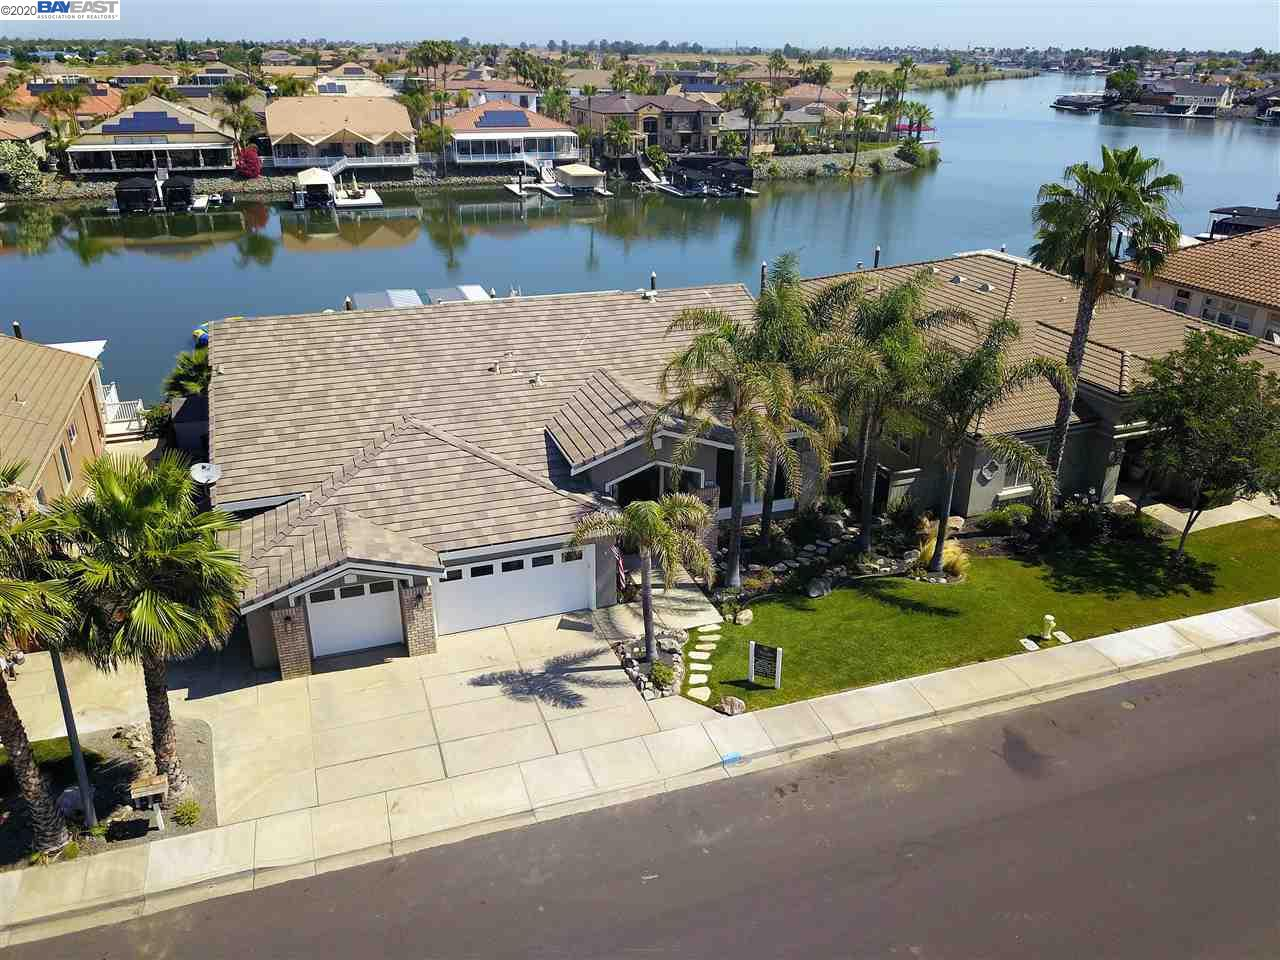 3913 Lighthouse Pl, DISCOVERY BAY, CA 94505